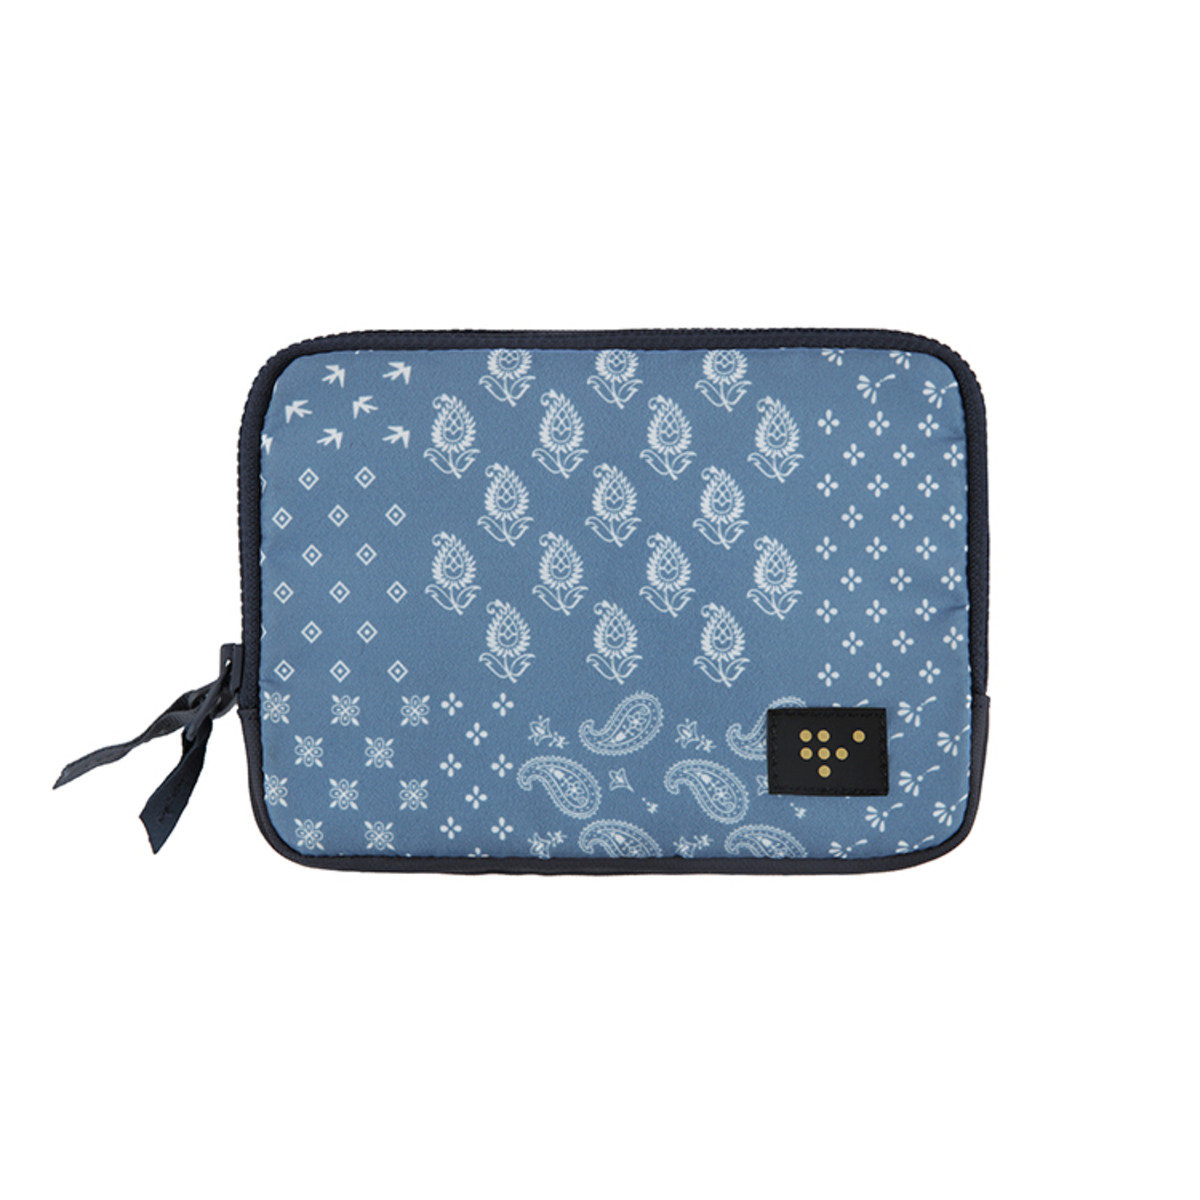 WEEKADE FAMILY PASSPORT POUCH 護照機票收納袋 - Blue Paisley